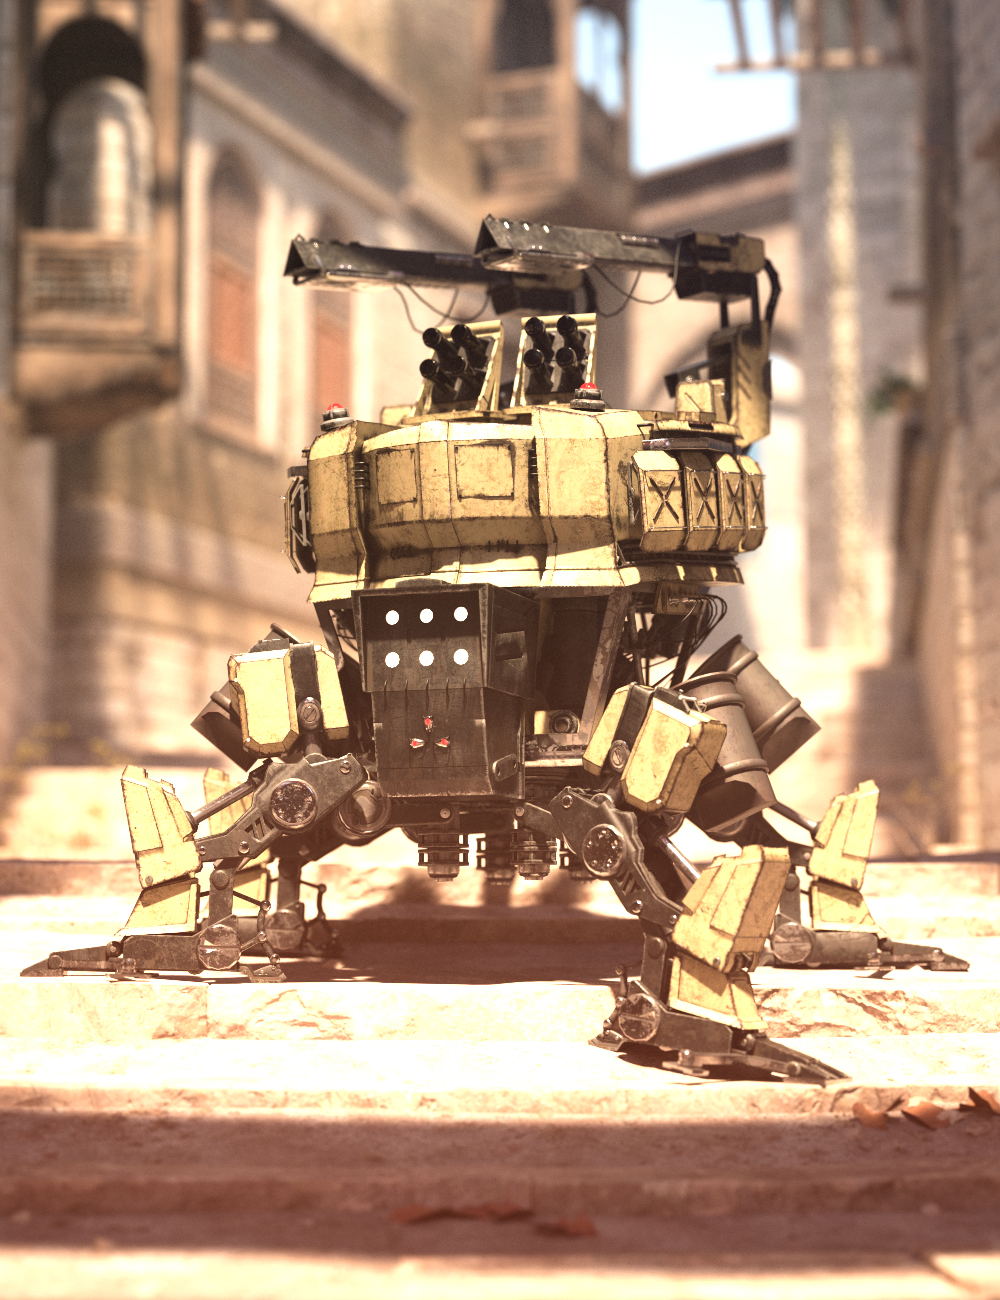 Walking UGV by: Charlie, 3D Models by Daz 3D